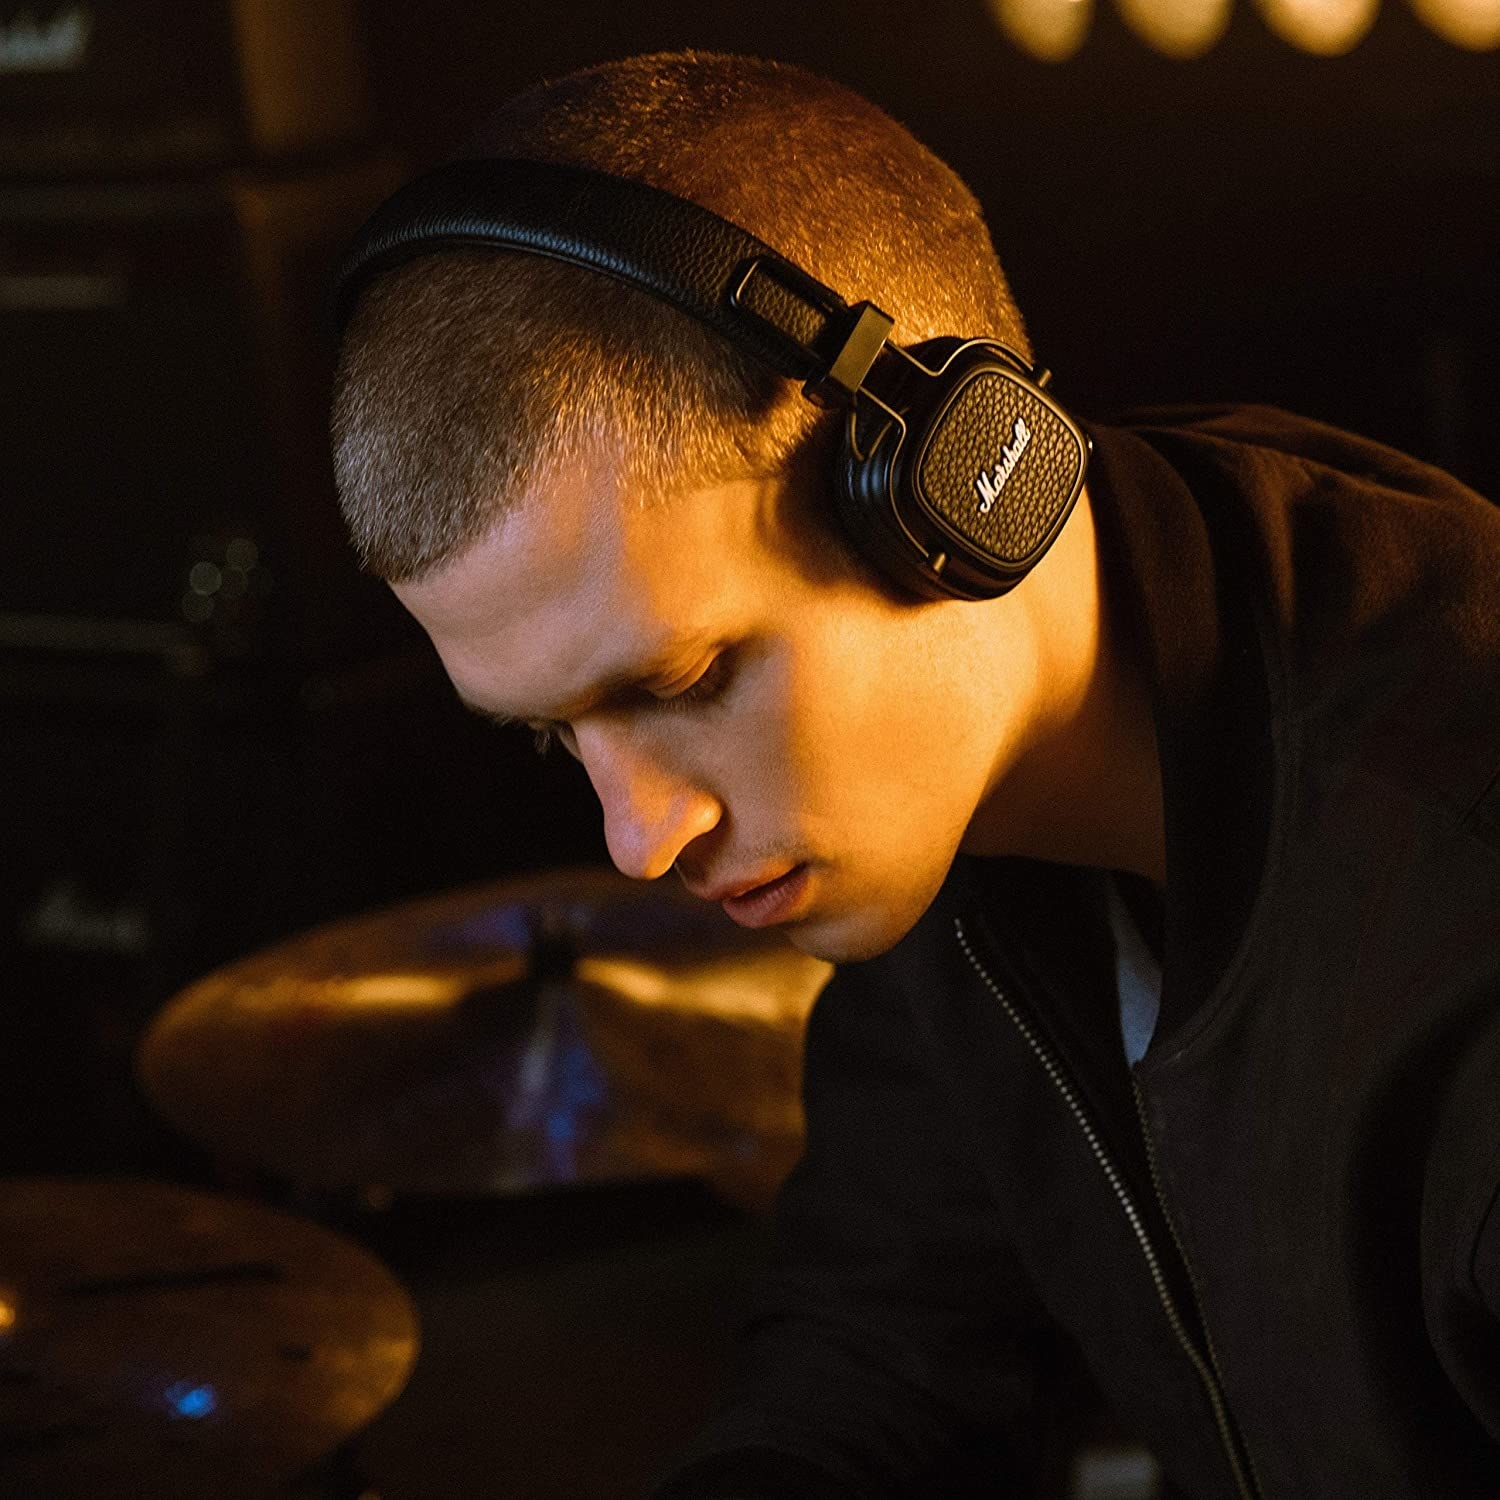 A person wearing the headphones